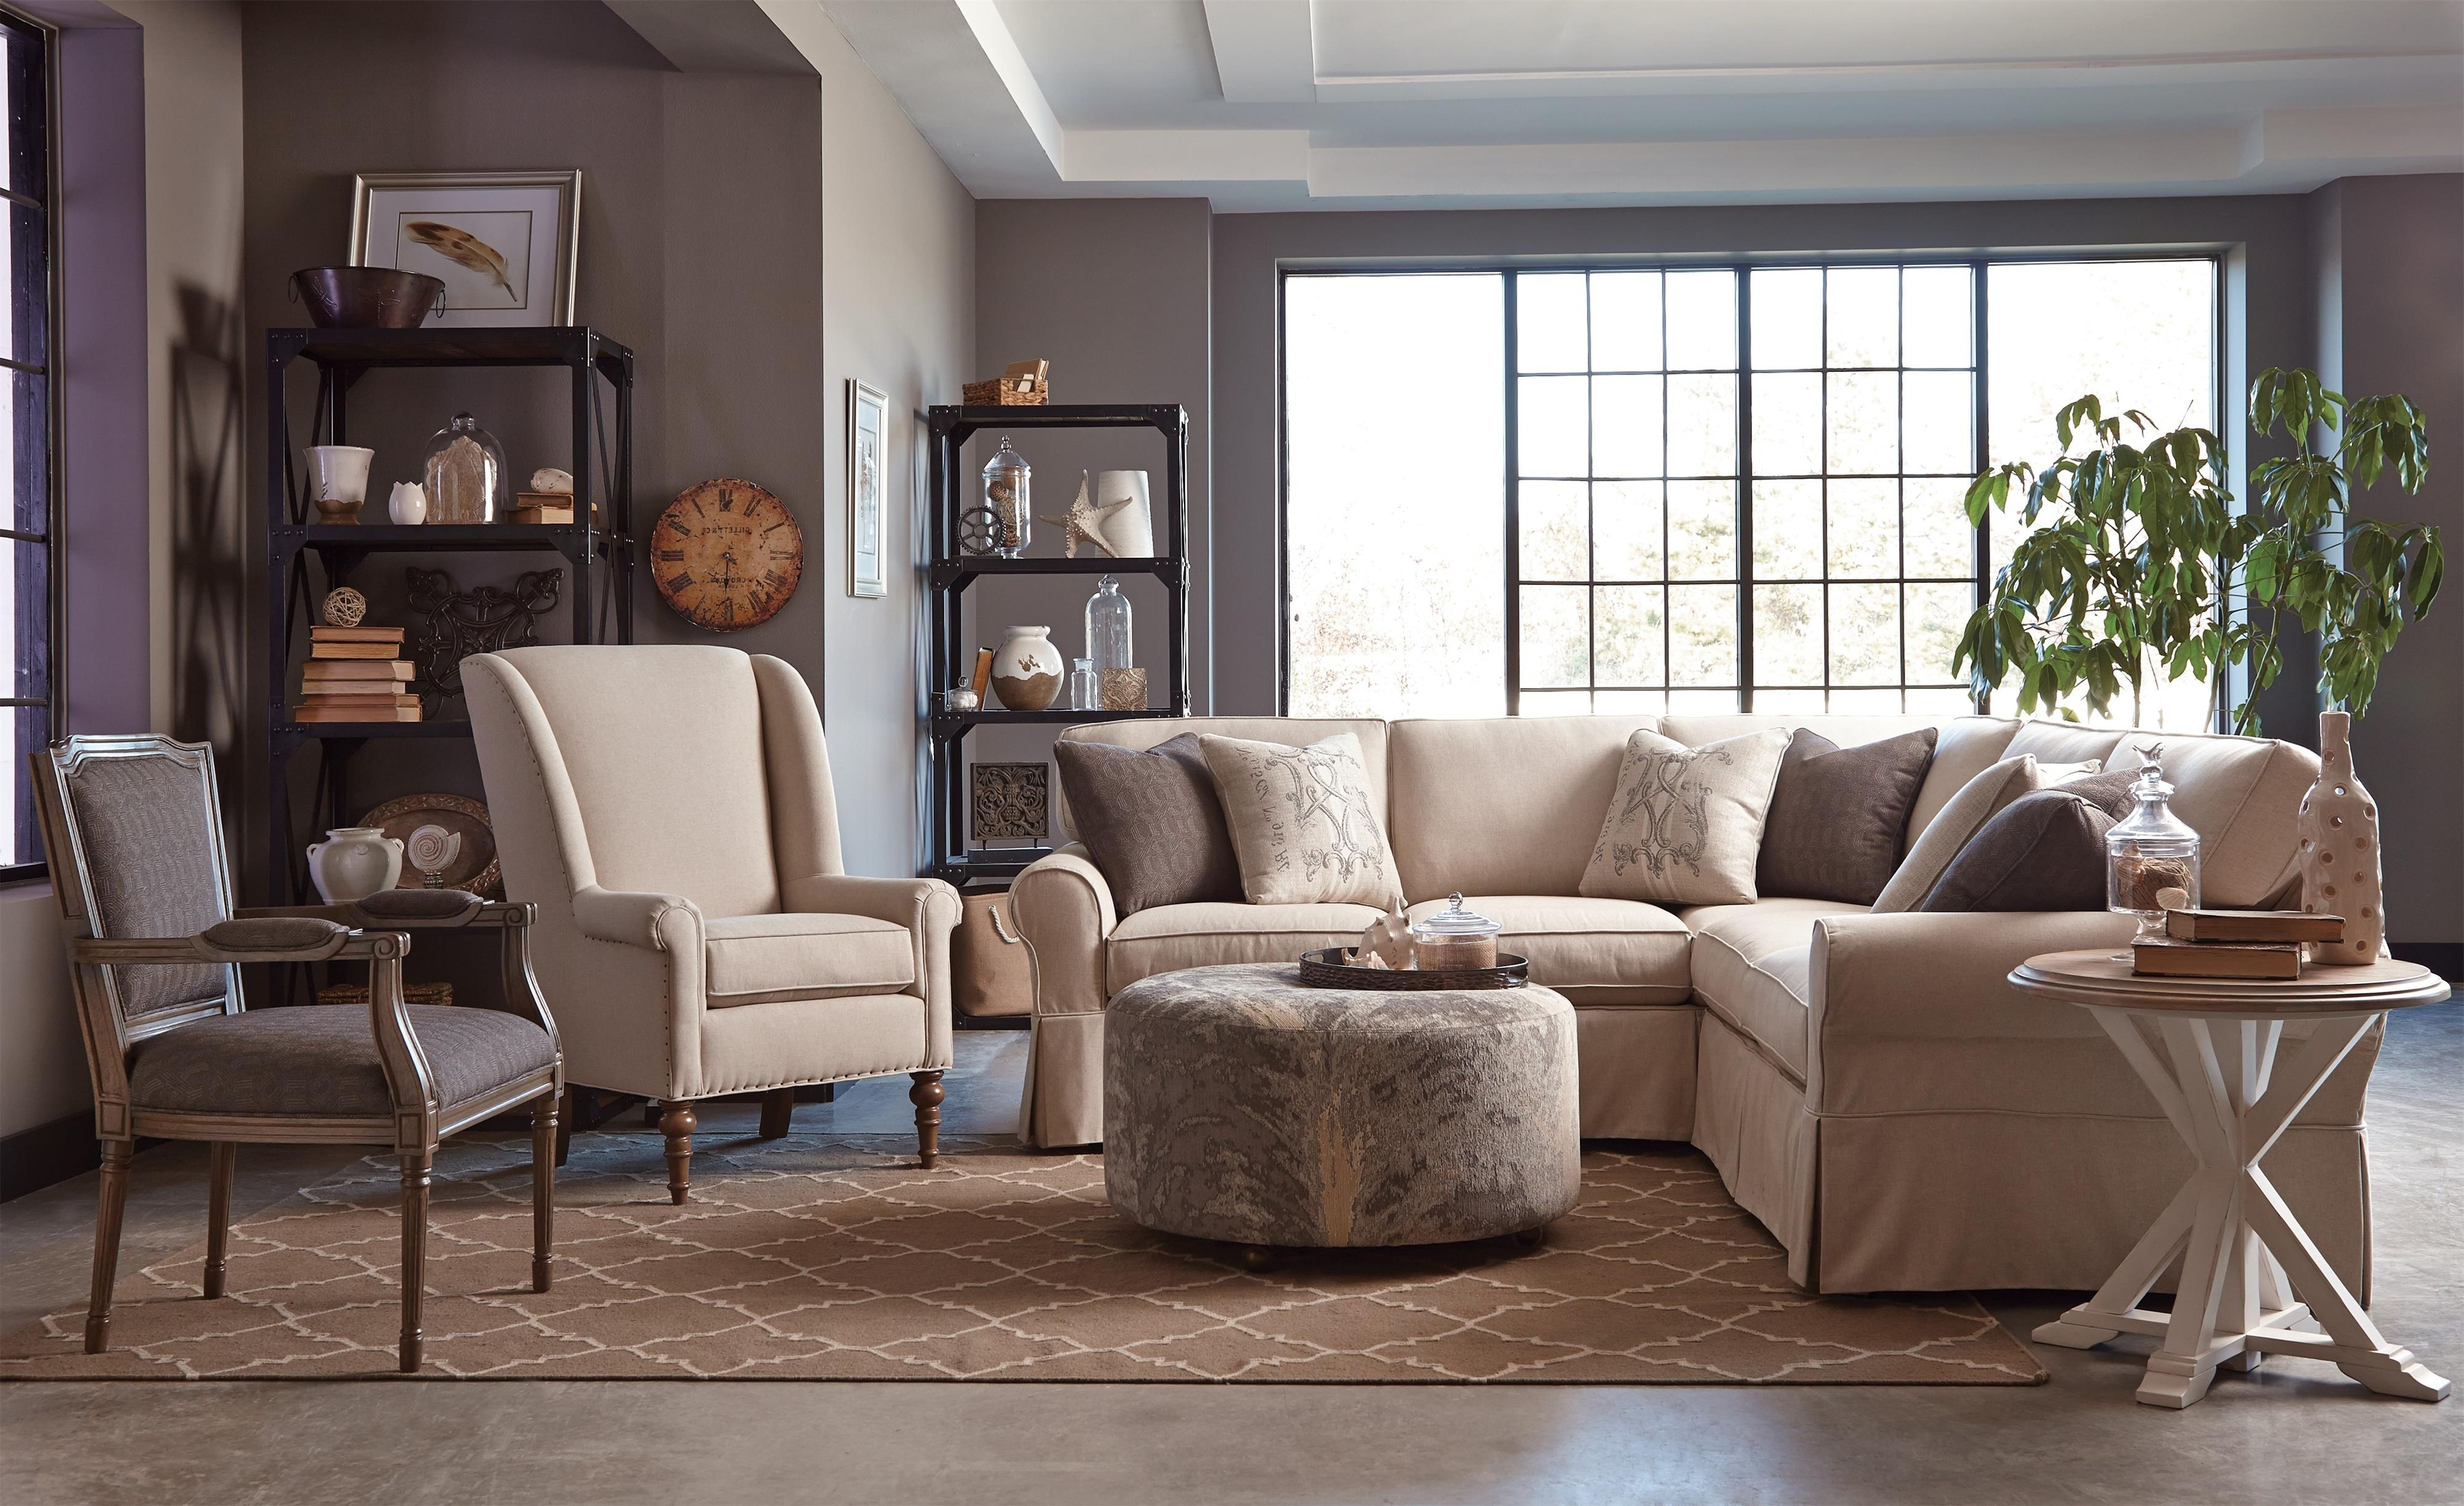 Most Recent Craftsman Sectional Sofas For Furnitures: Fill Your Home With Luxury Craftmaster Furniture For (View 11 of 15)